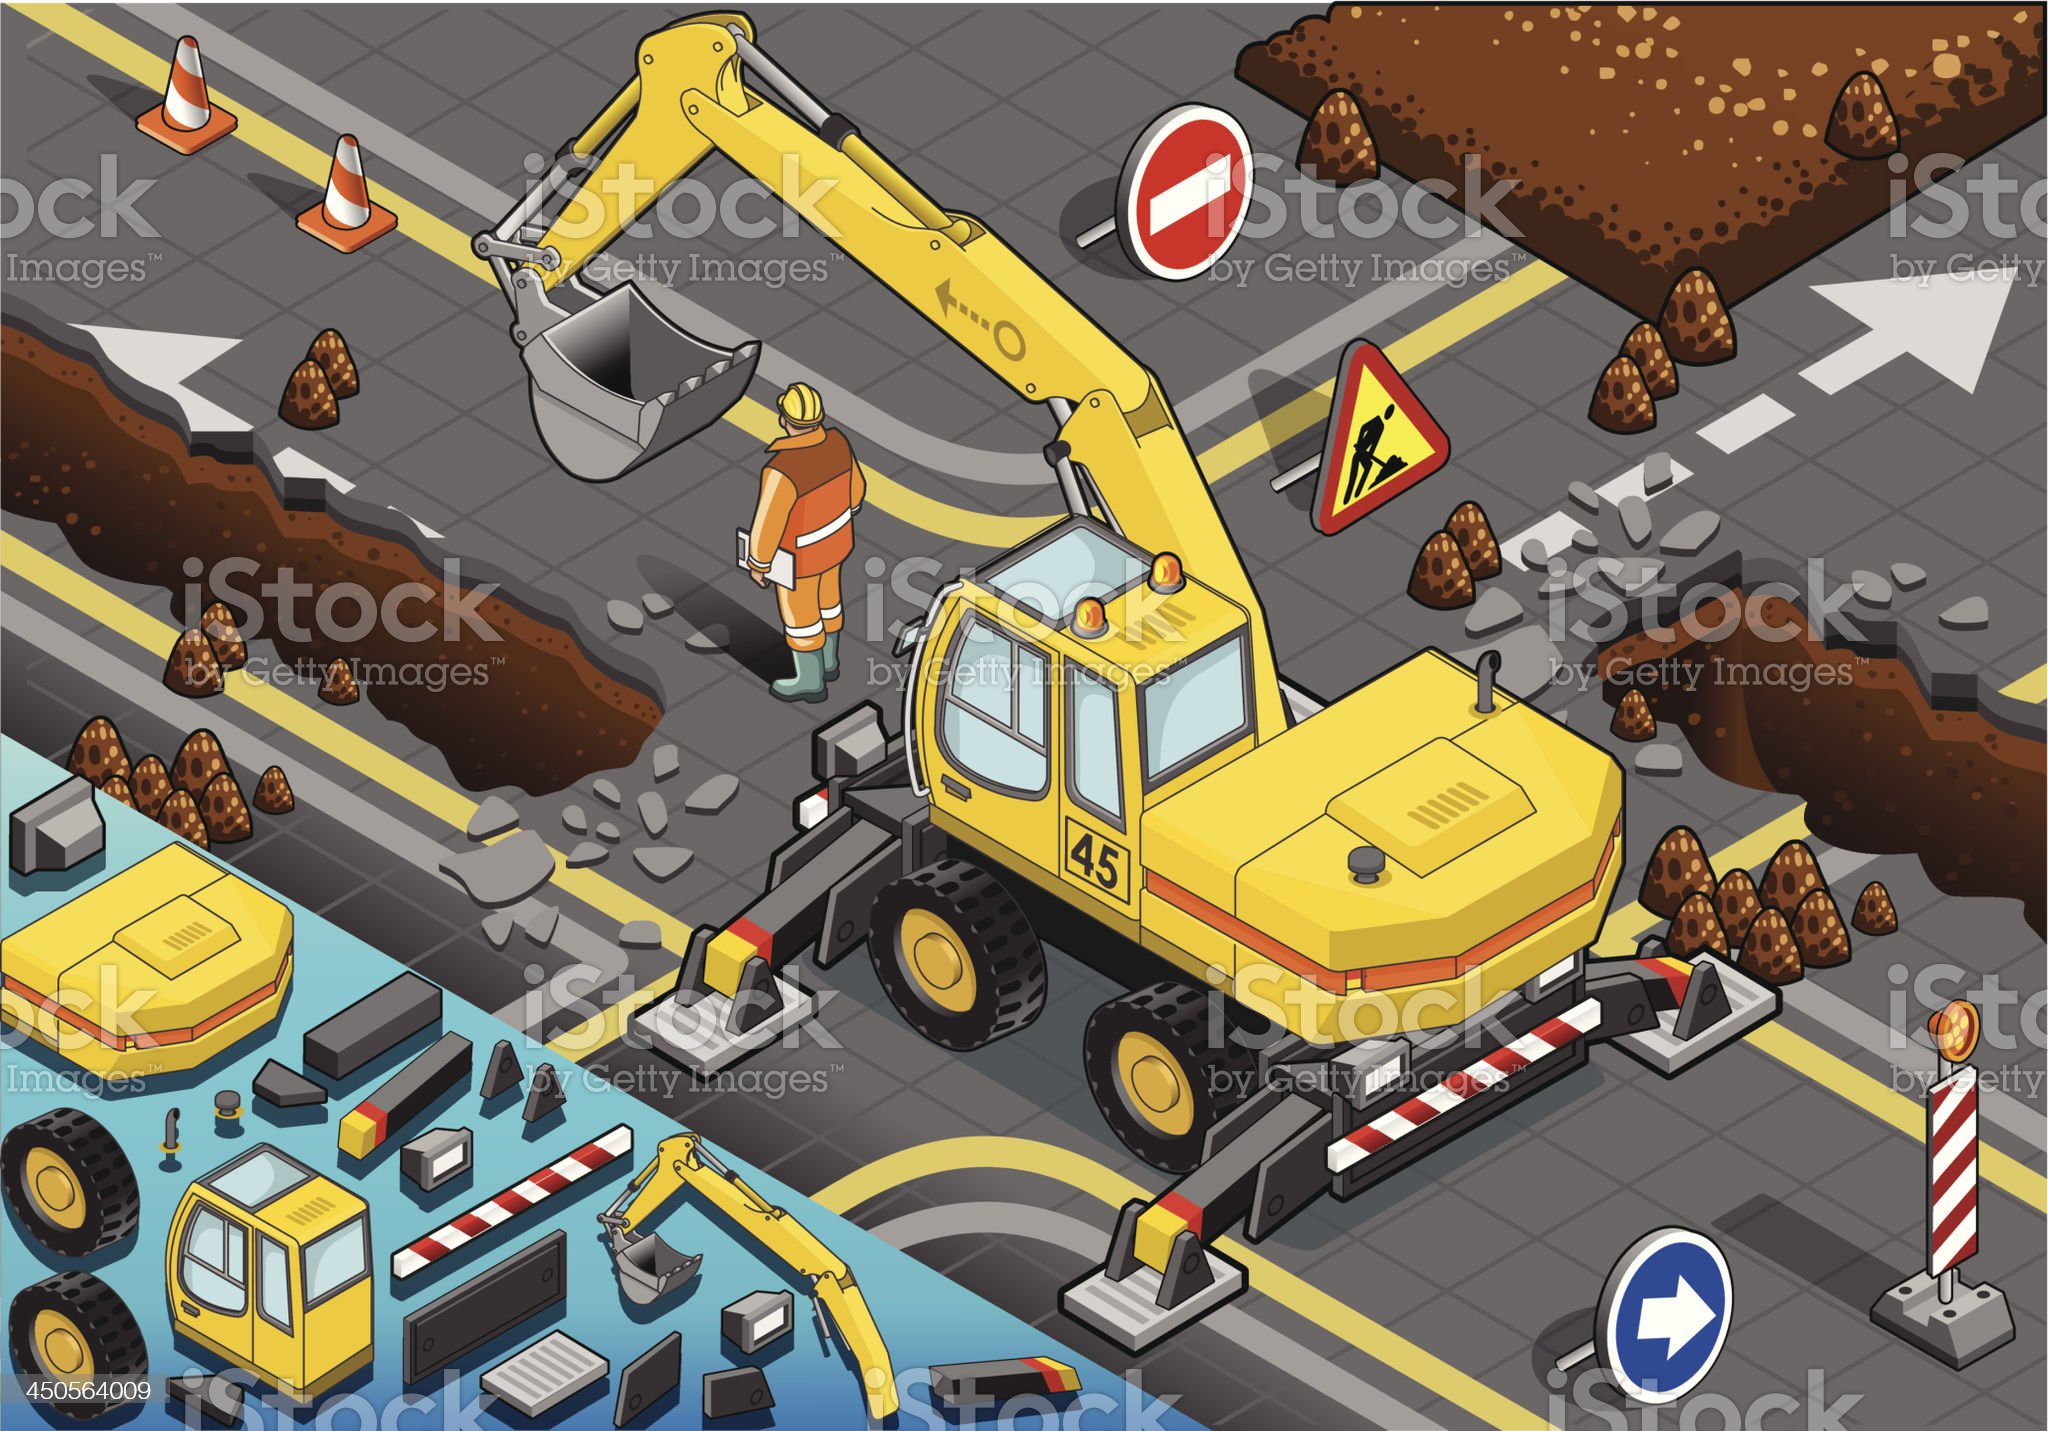 Isometric Yellow Excavator with Four Arms in Rear View royalty-free stock vector art